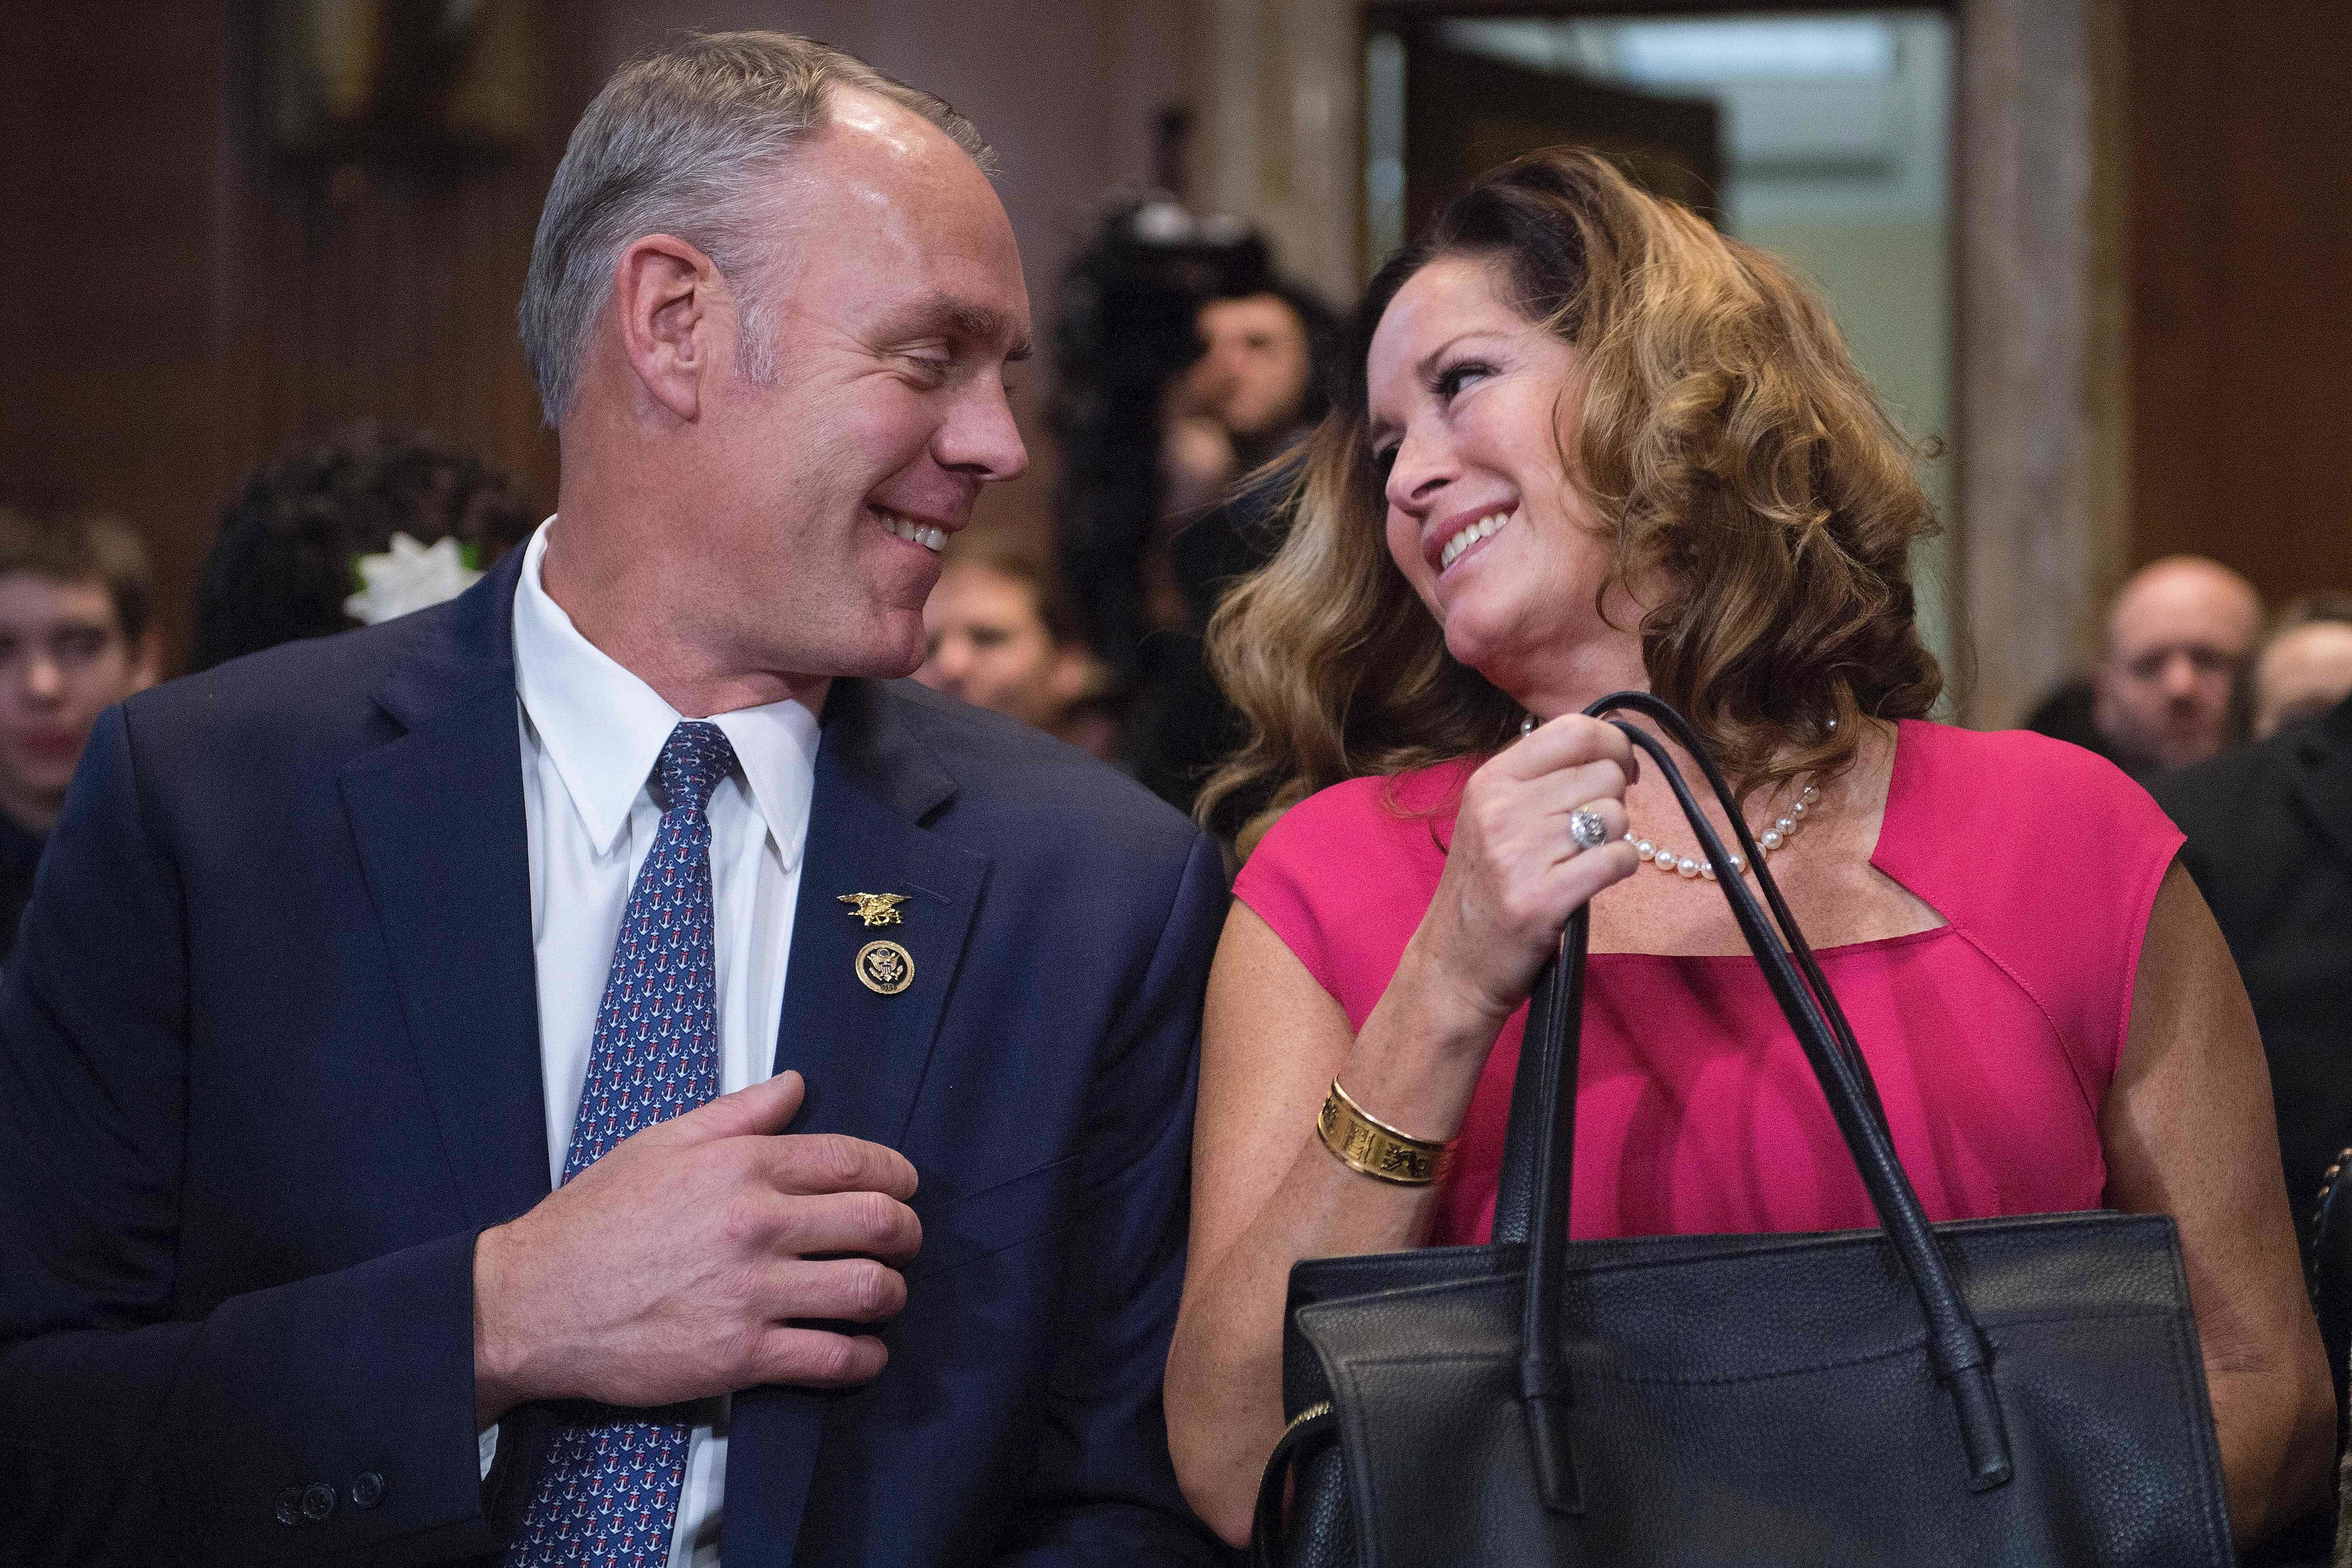 US Congressman Ryan Zinke (L), R-Montana, smiles at his wife Lolita Hand (R) as he prepares to testify before Senate Committee on Energy and Natural Resources on Capitol Hill in Washington, DC, January 17, 2017, on his nomination to be Secretary of the Interior in the Trump administration. / AFP / JIM WATSON        (Photo credit should read JIM WATSON/AFP/Getty Images)